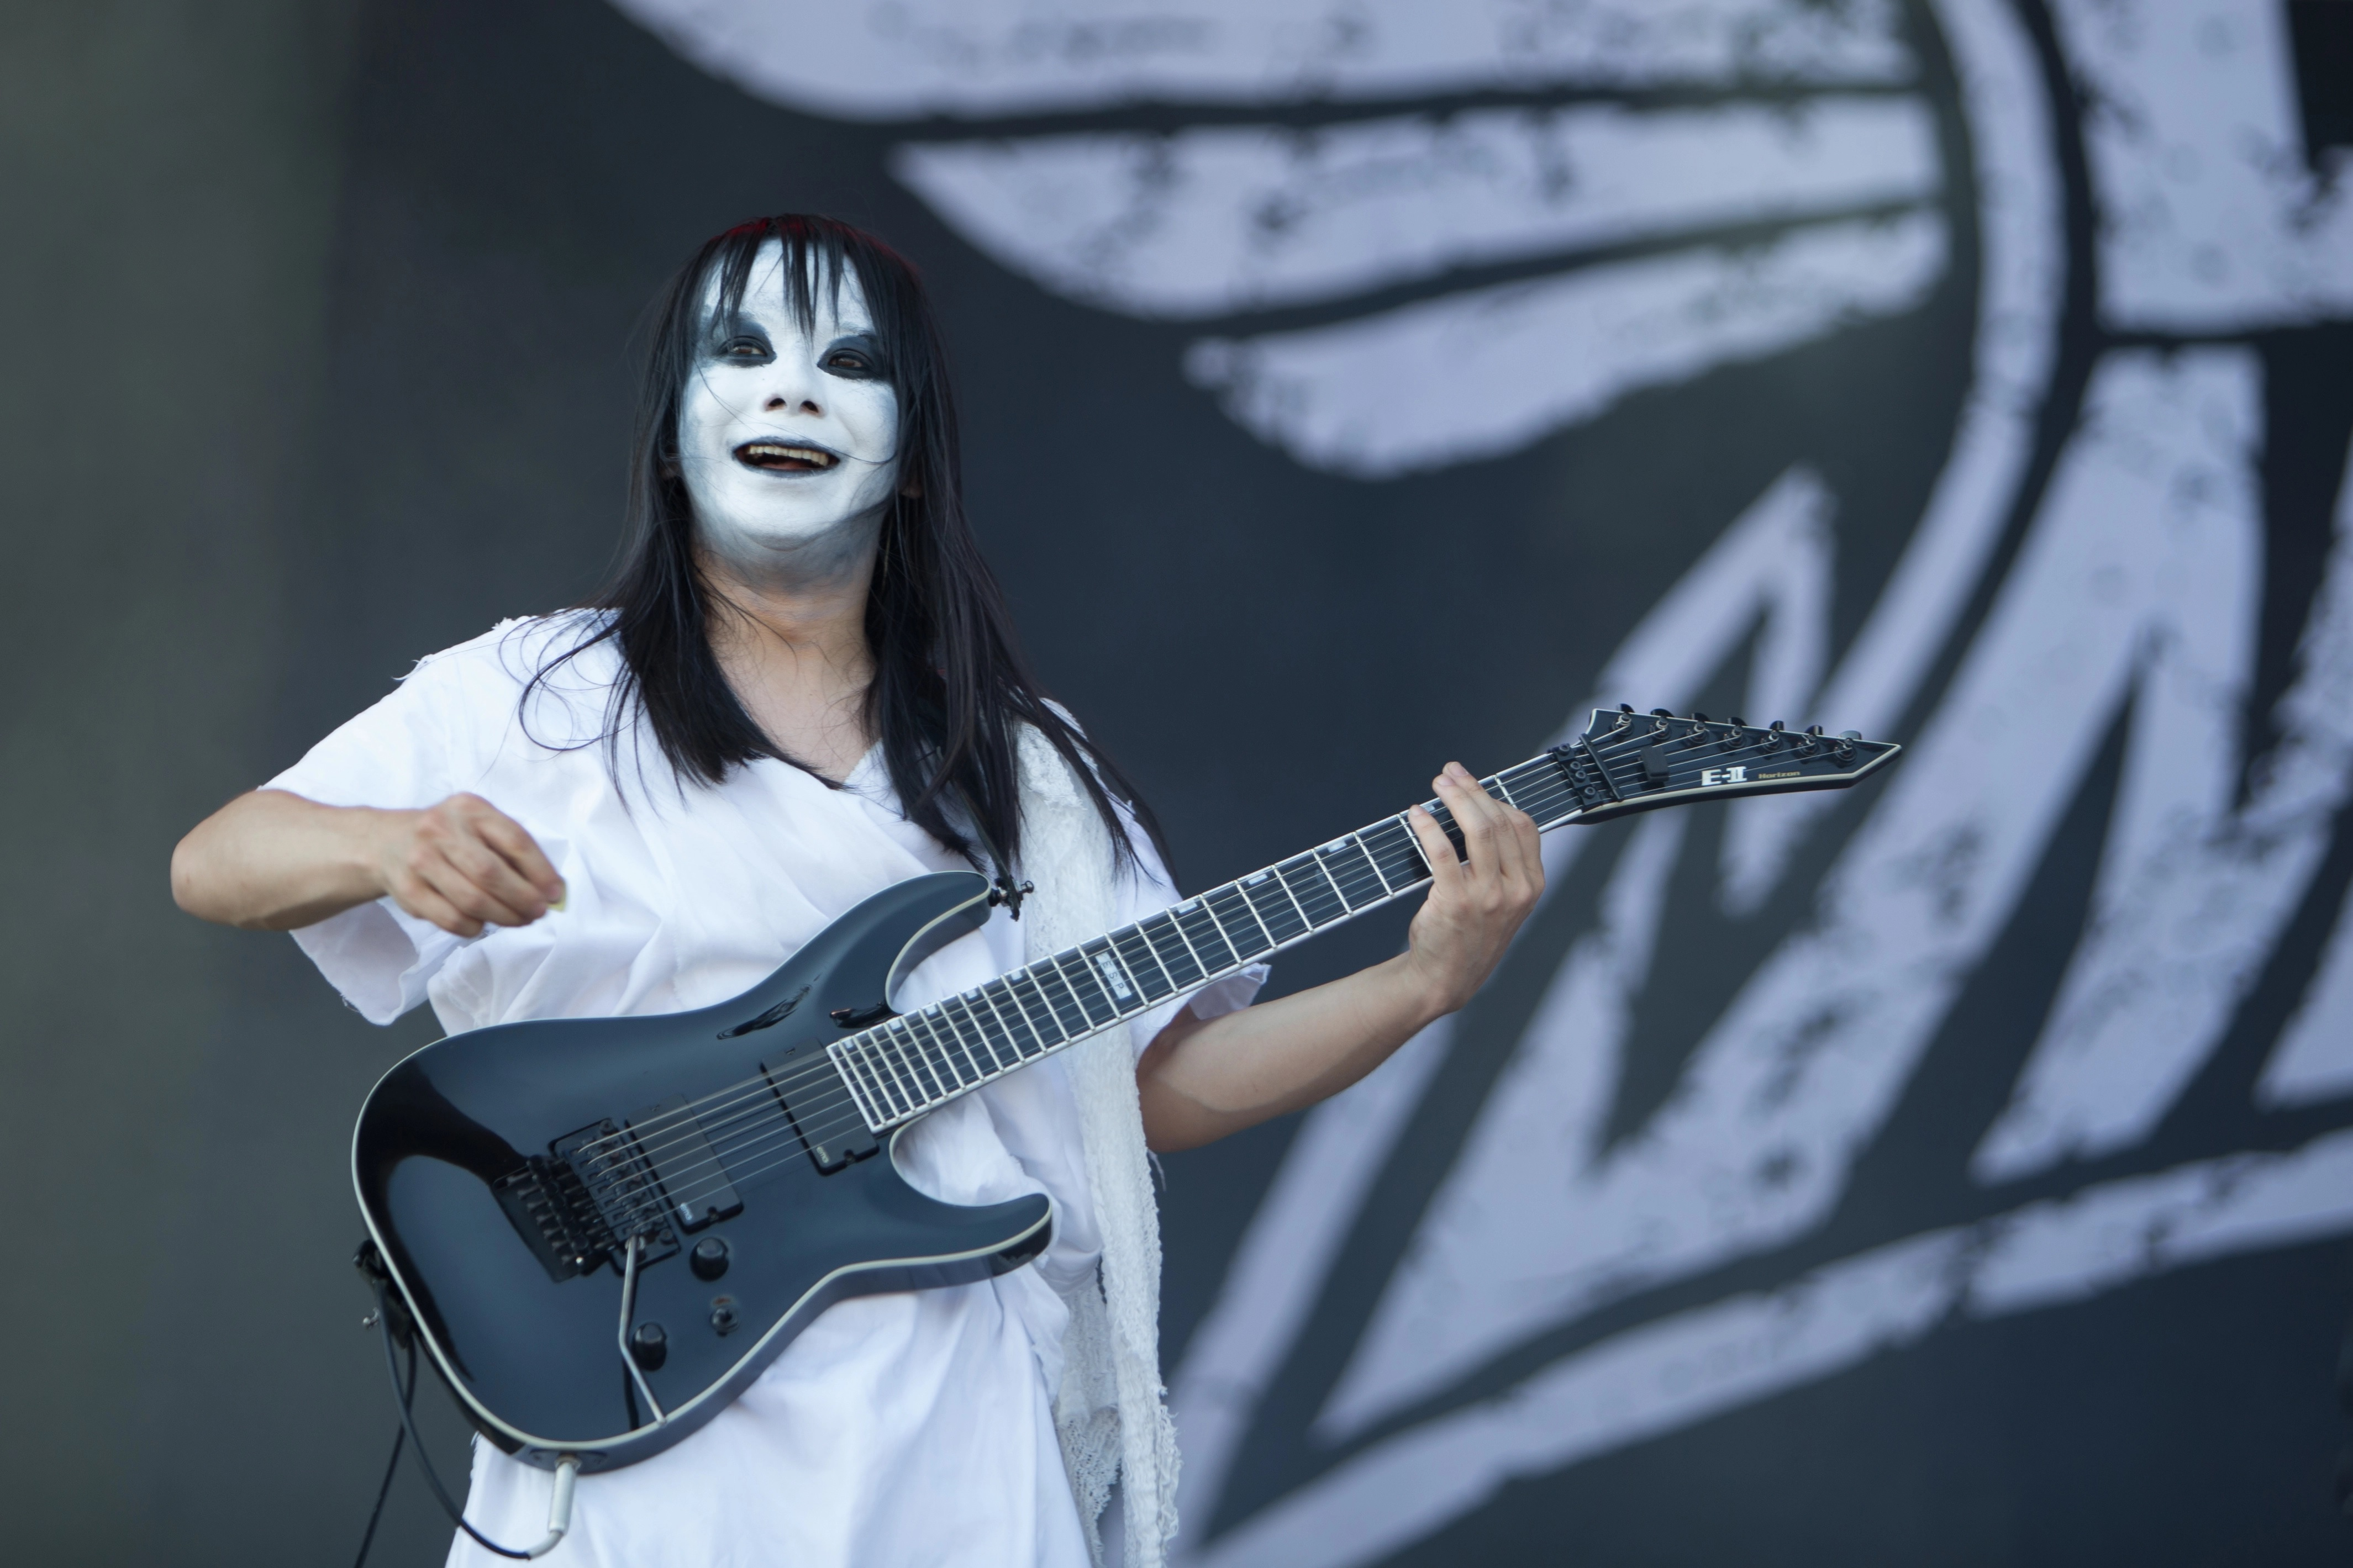 R.I.P. Babymetal Guitarist Mikio Fujioka Dies After Tragic Fall ...